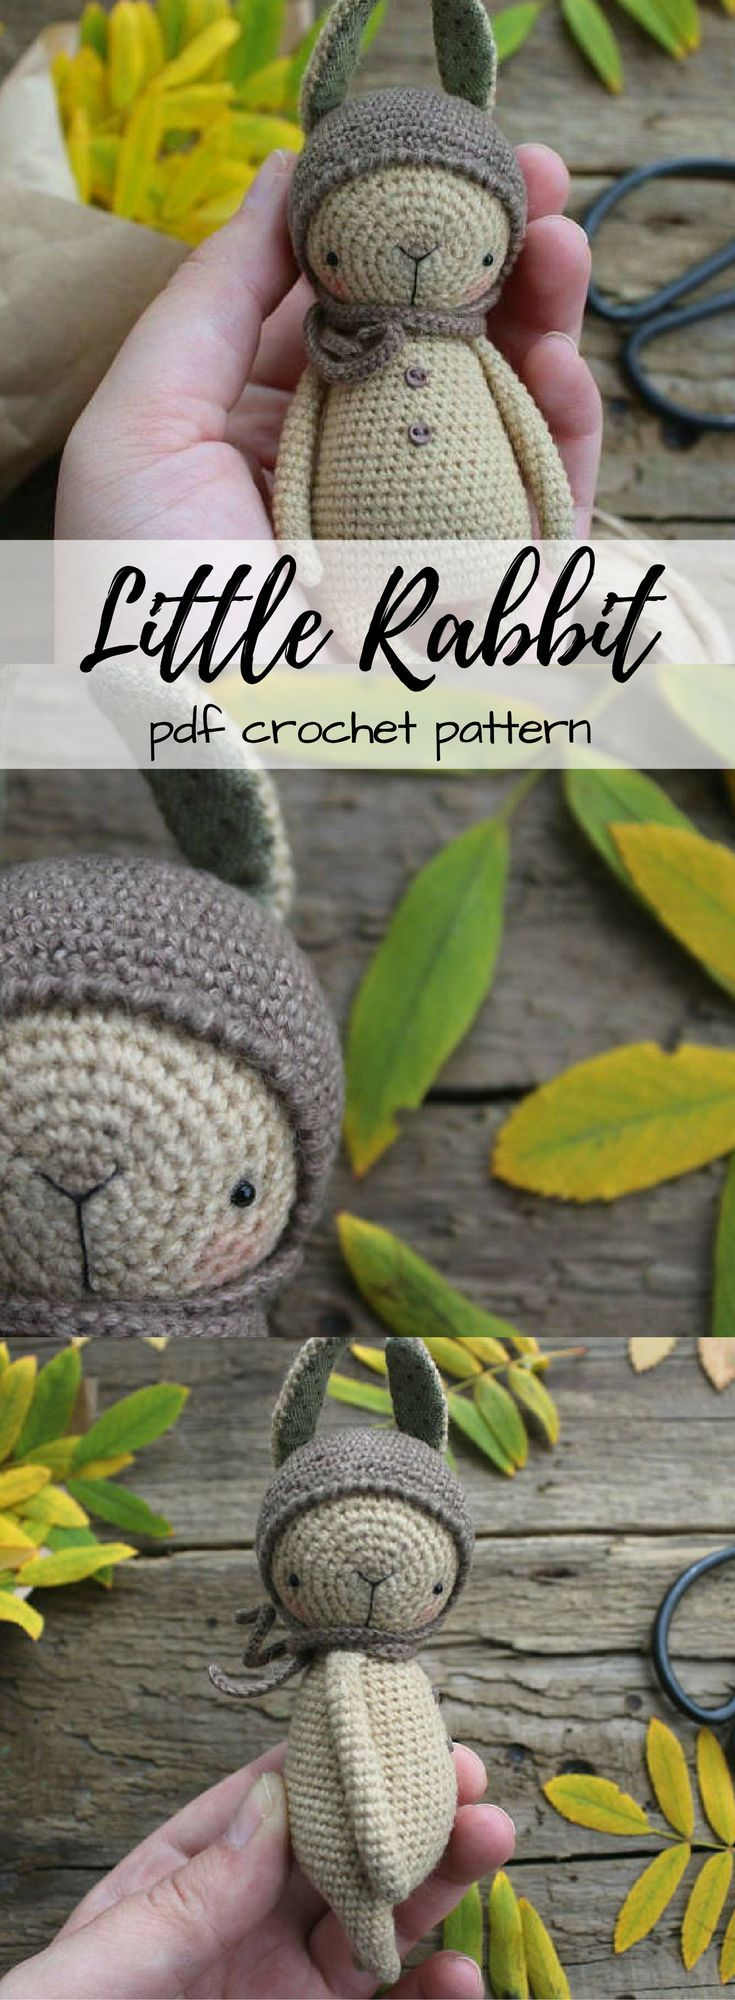 pdf crochet pattern and video tutorials for how to crochet this cute little rabbit amigurumi toy. Love Little Owl Designs! Such sweet designs #etsy #ad #crochetpattern #stuffedanimal